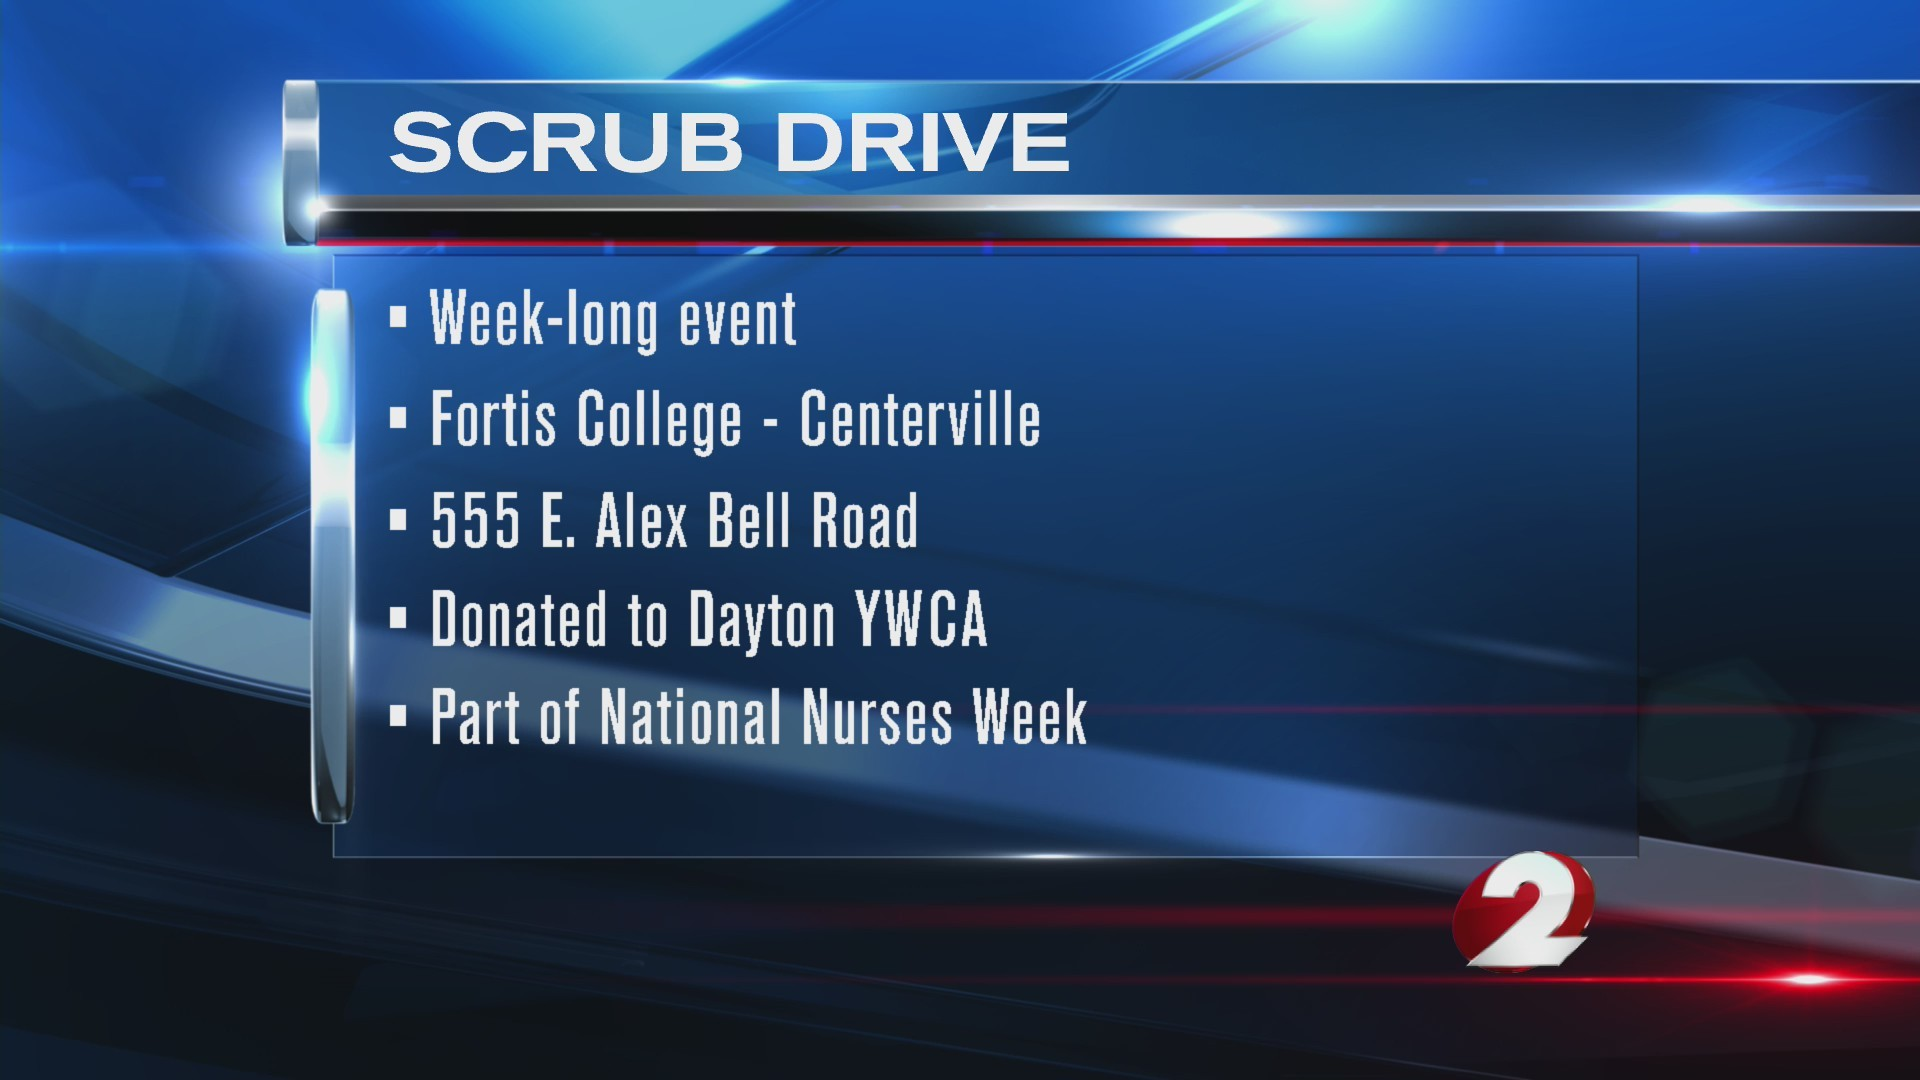 Scrub Drive at Fortis College in Centerville